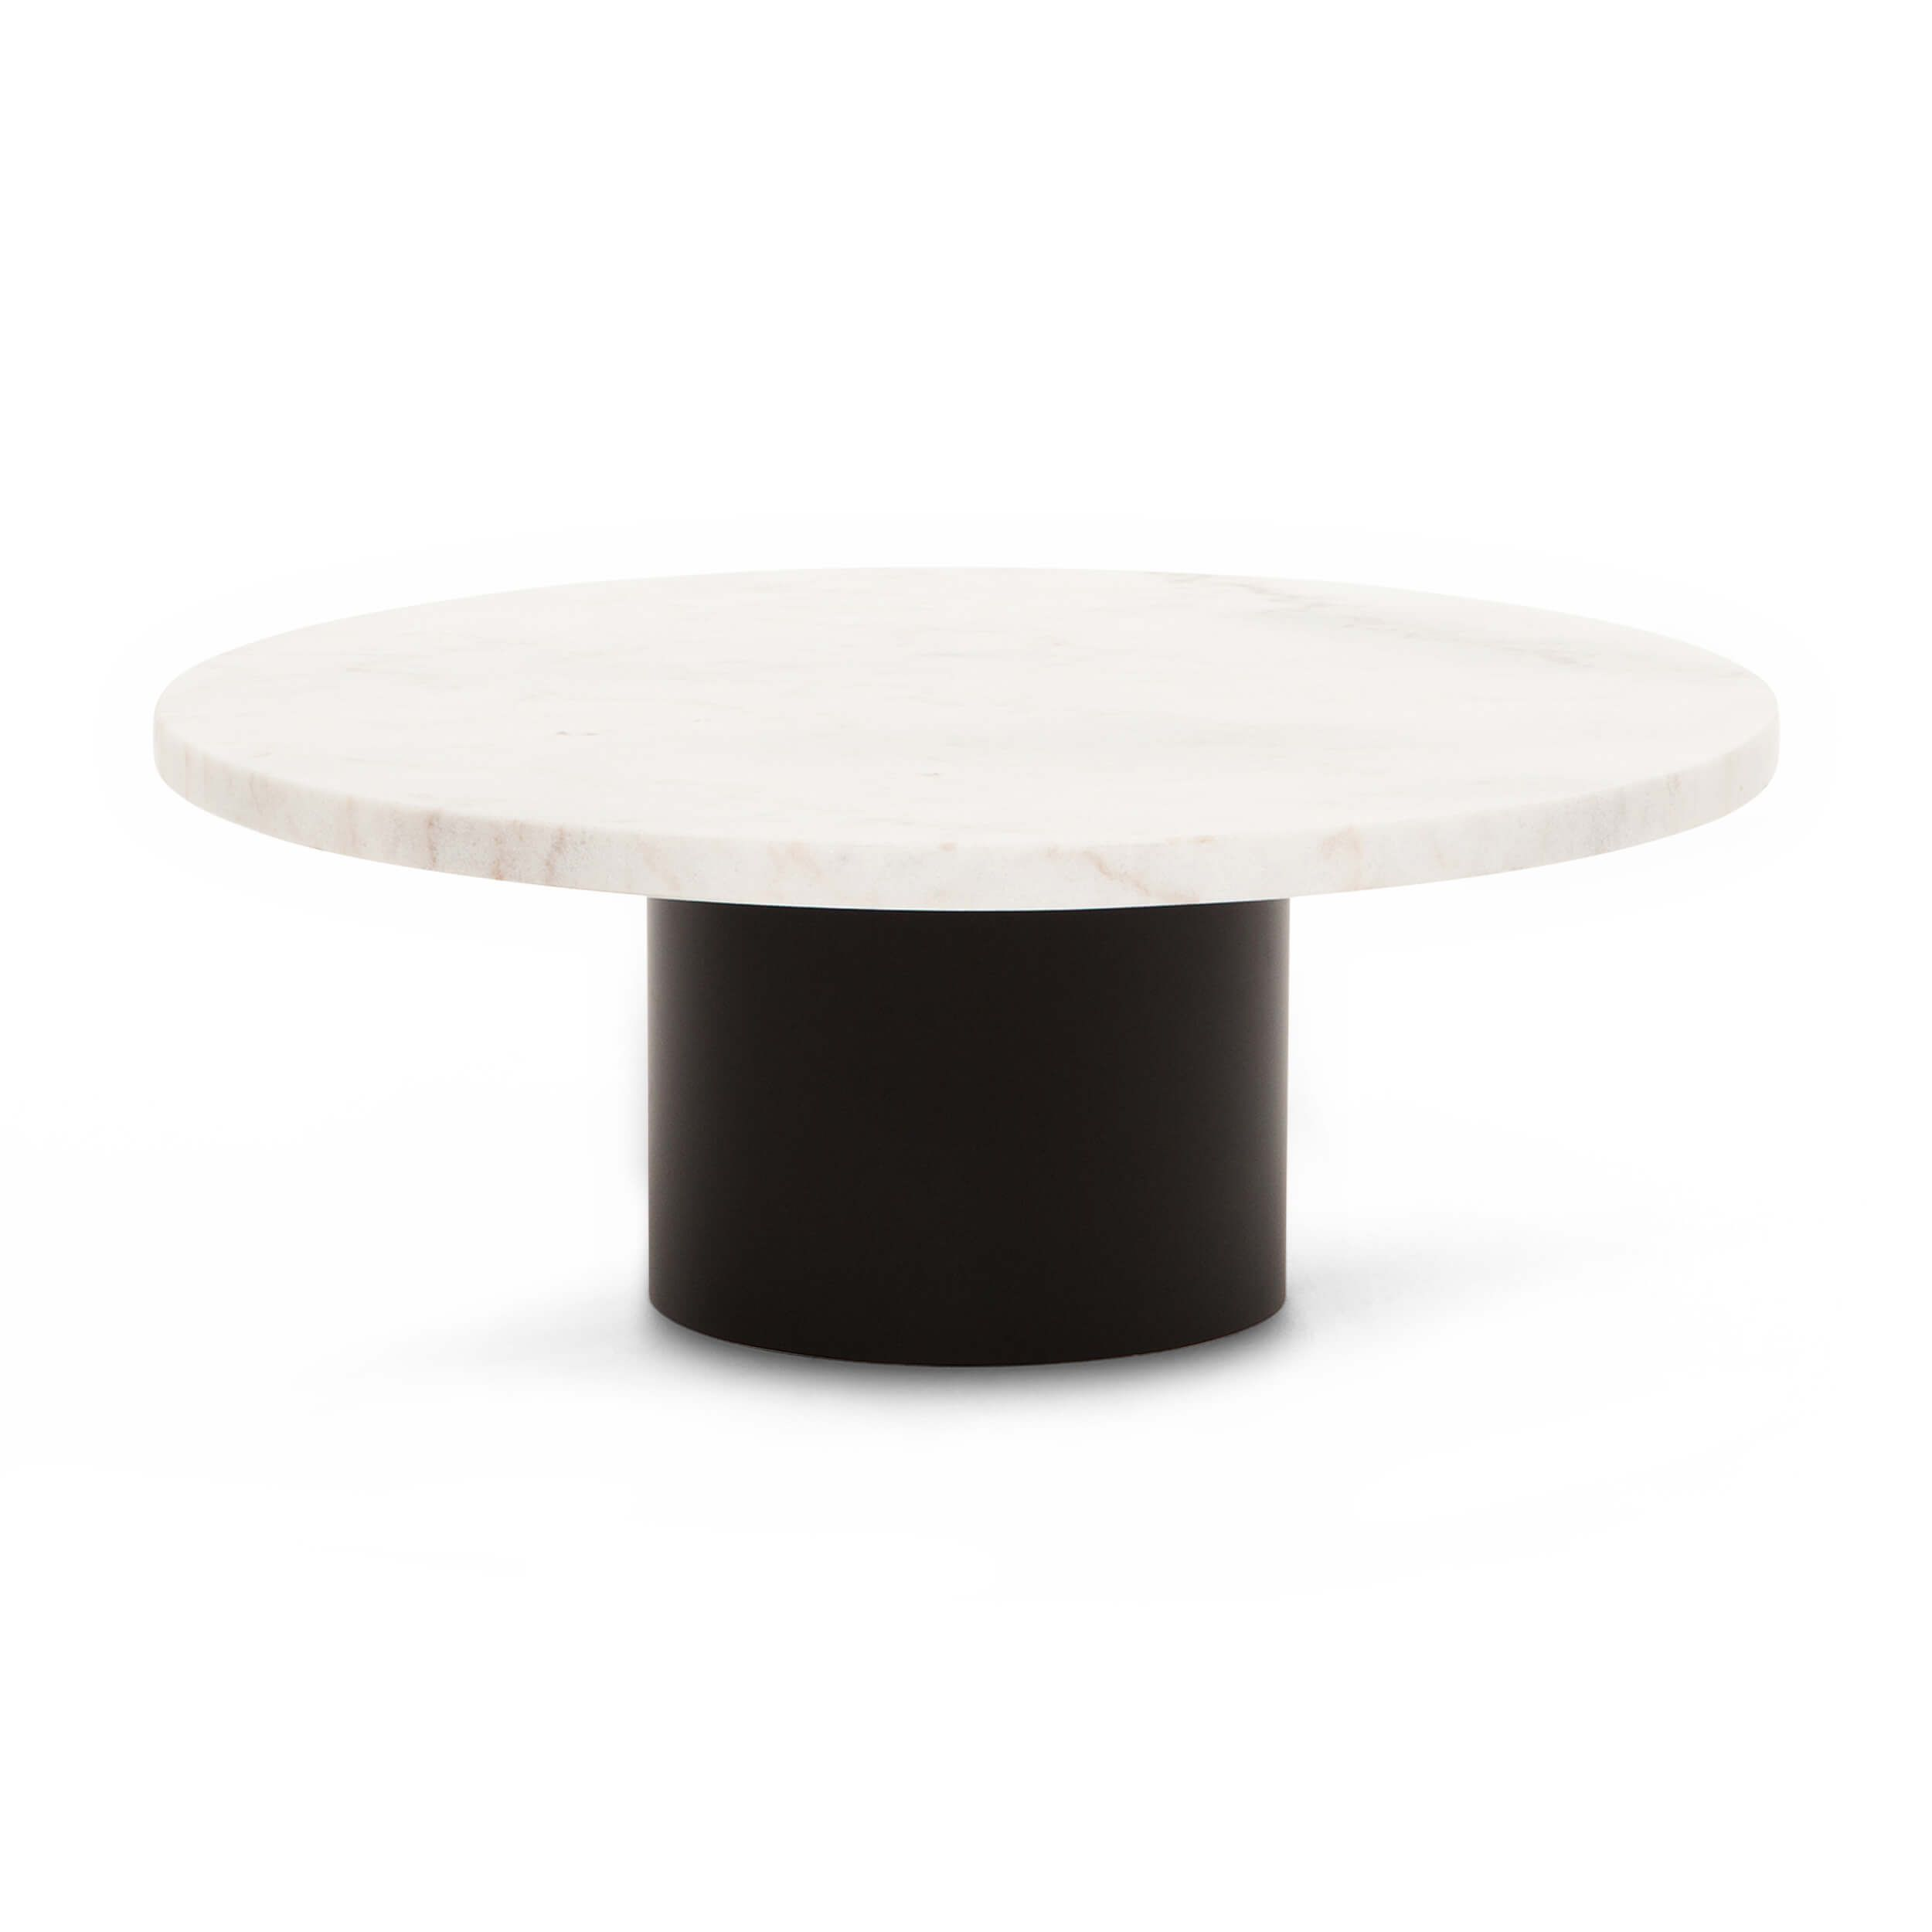 Now Available In A Sleek Black Base The Ynes Coffee Table Has A Throwback Feel Top Is 38mm 1 Modern Glass Coffee Table Coffee Table White Round Coffee Table [ 2500 x 2500 Pixel ]